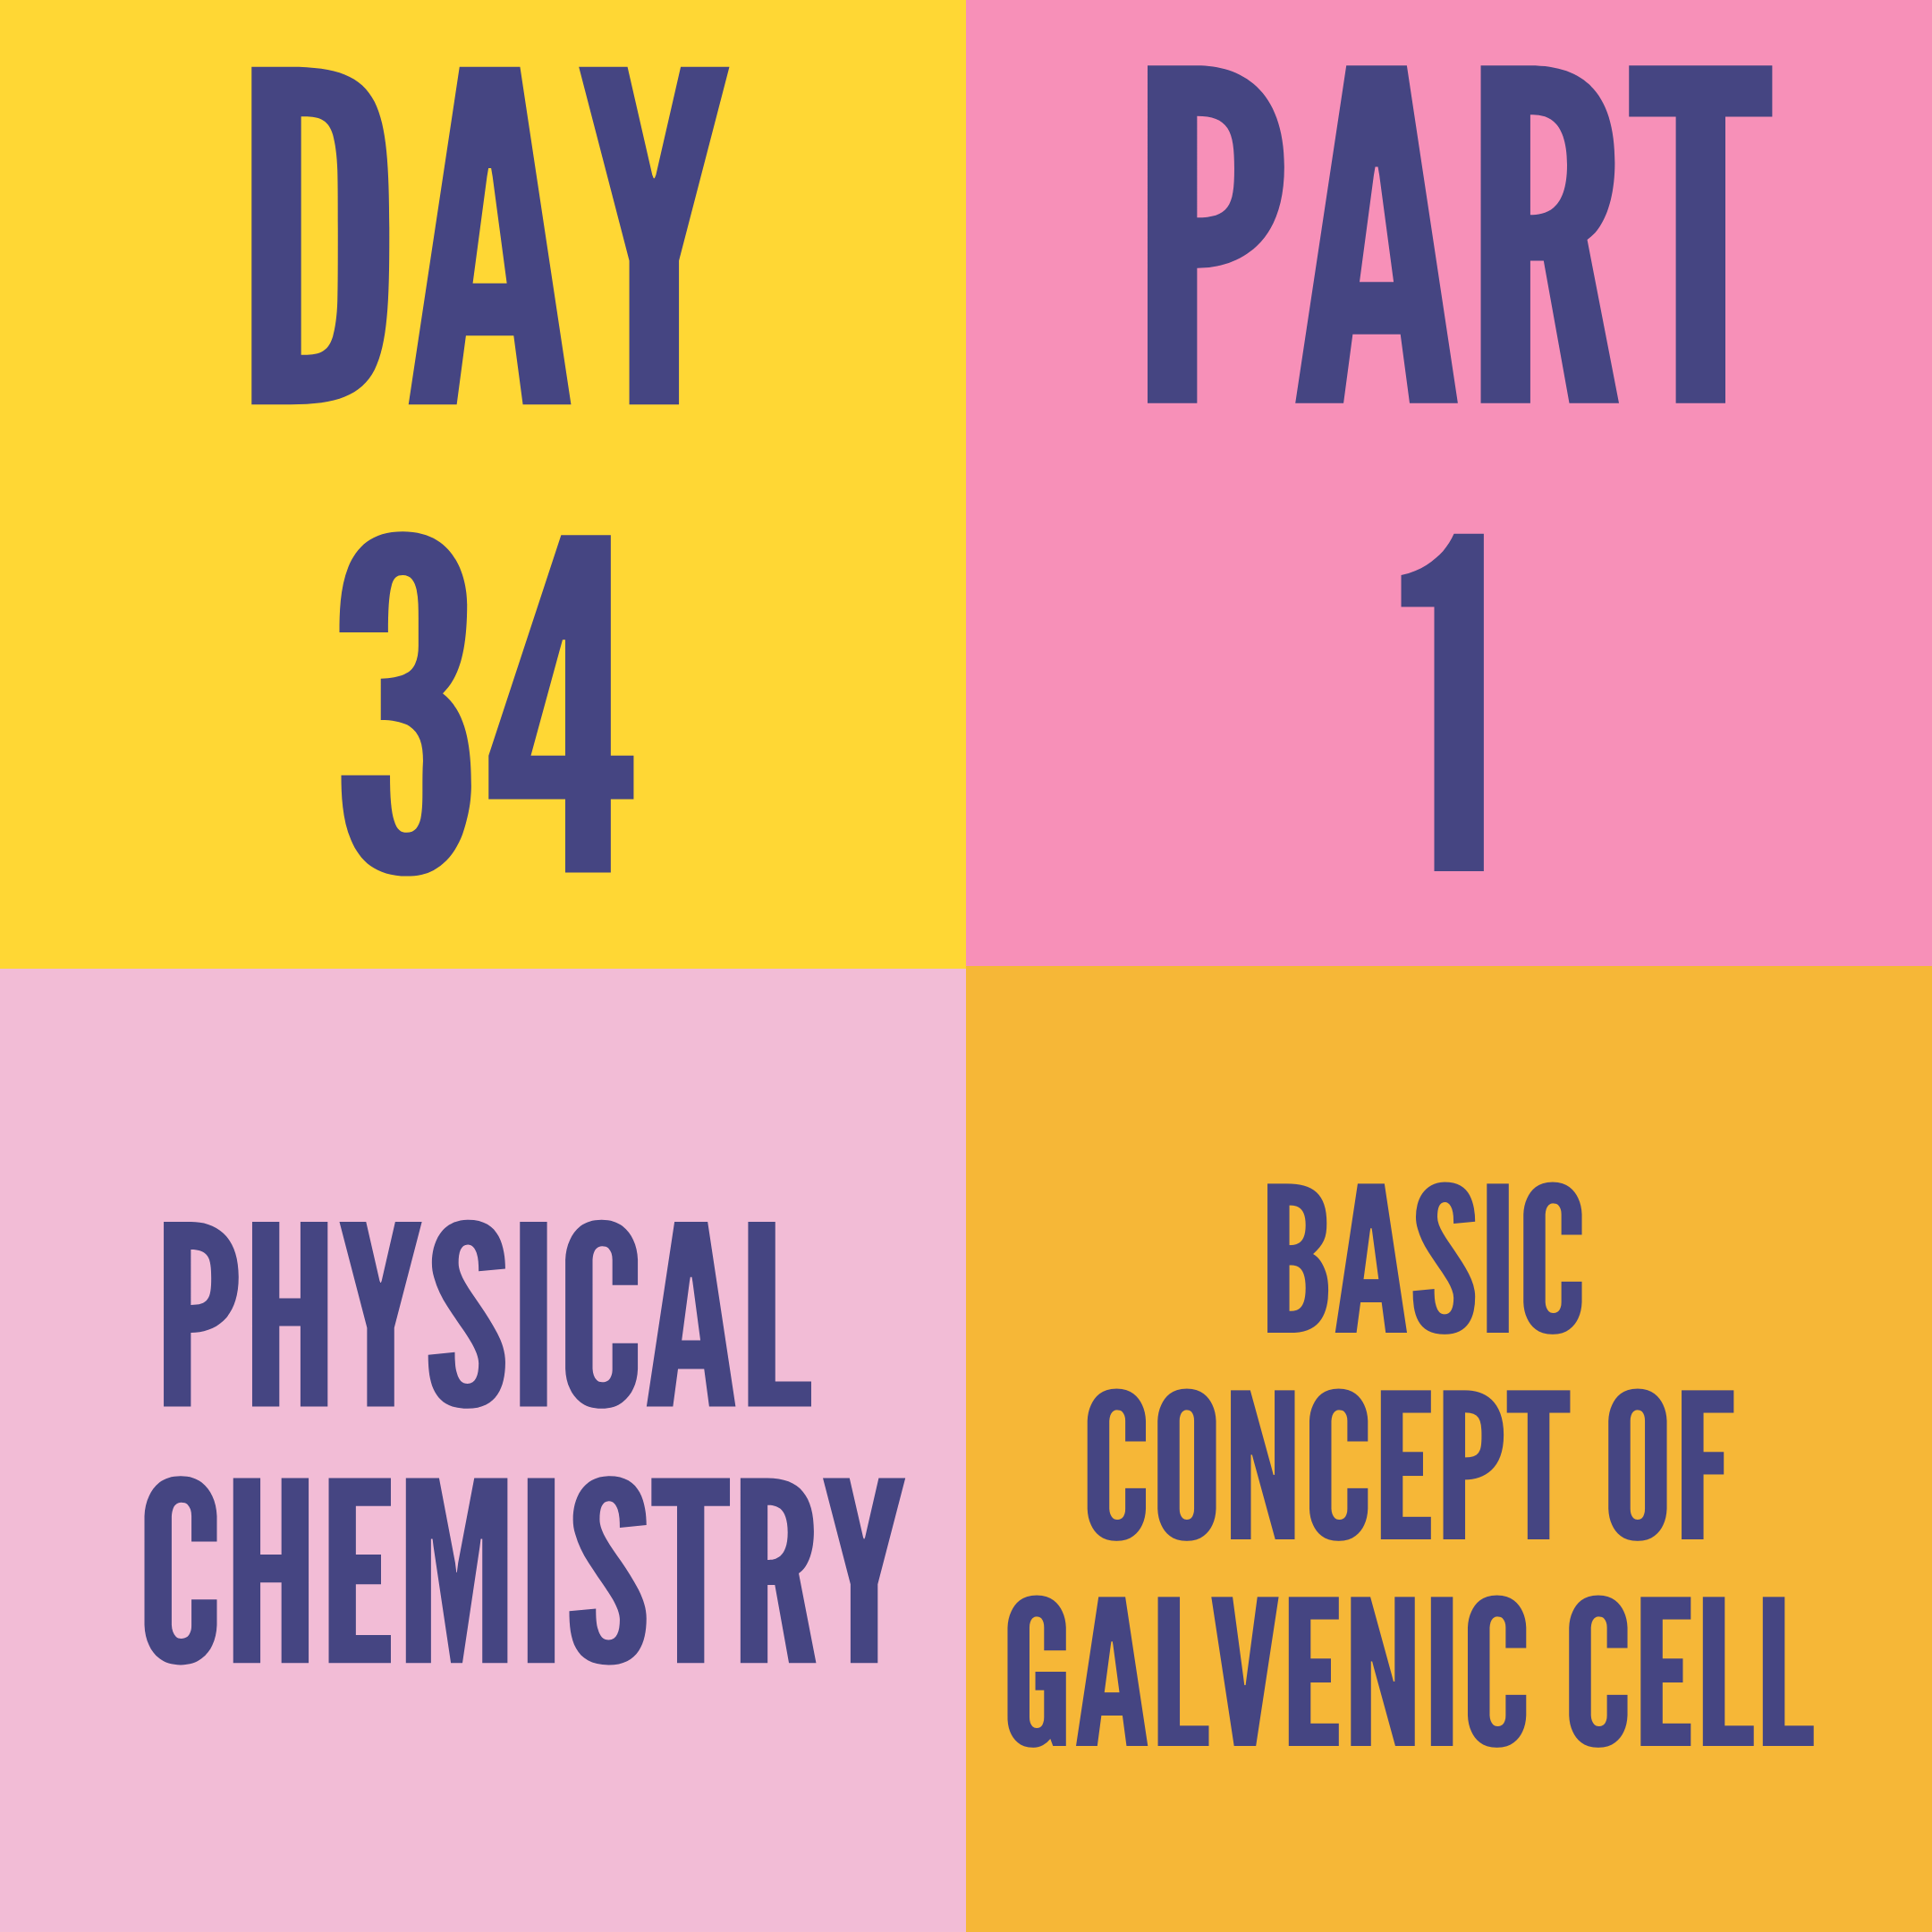 DAY-34 PART-1 BASIC CONCEPT OF GALVENIC CELL